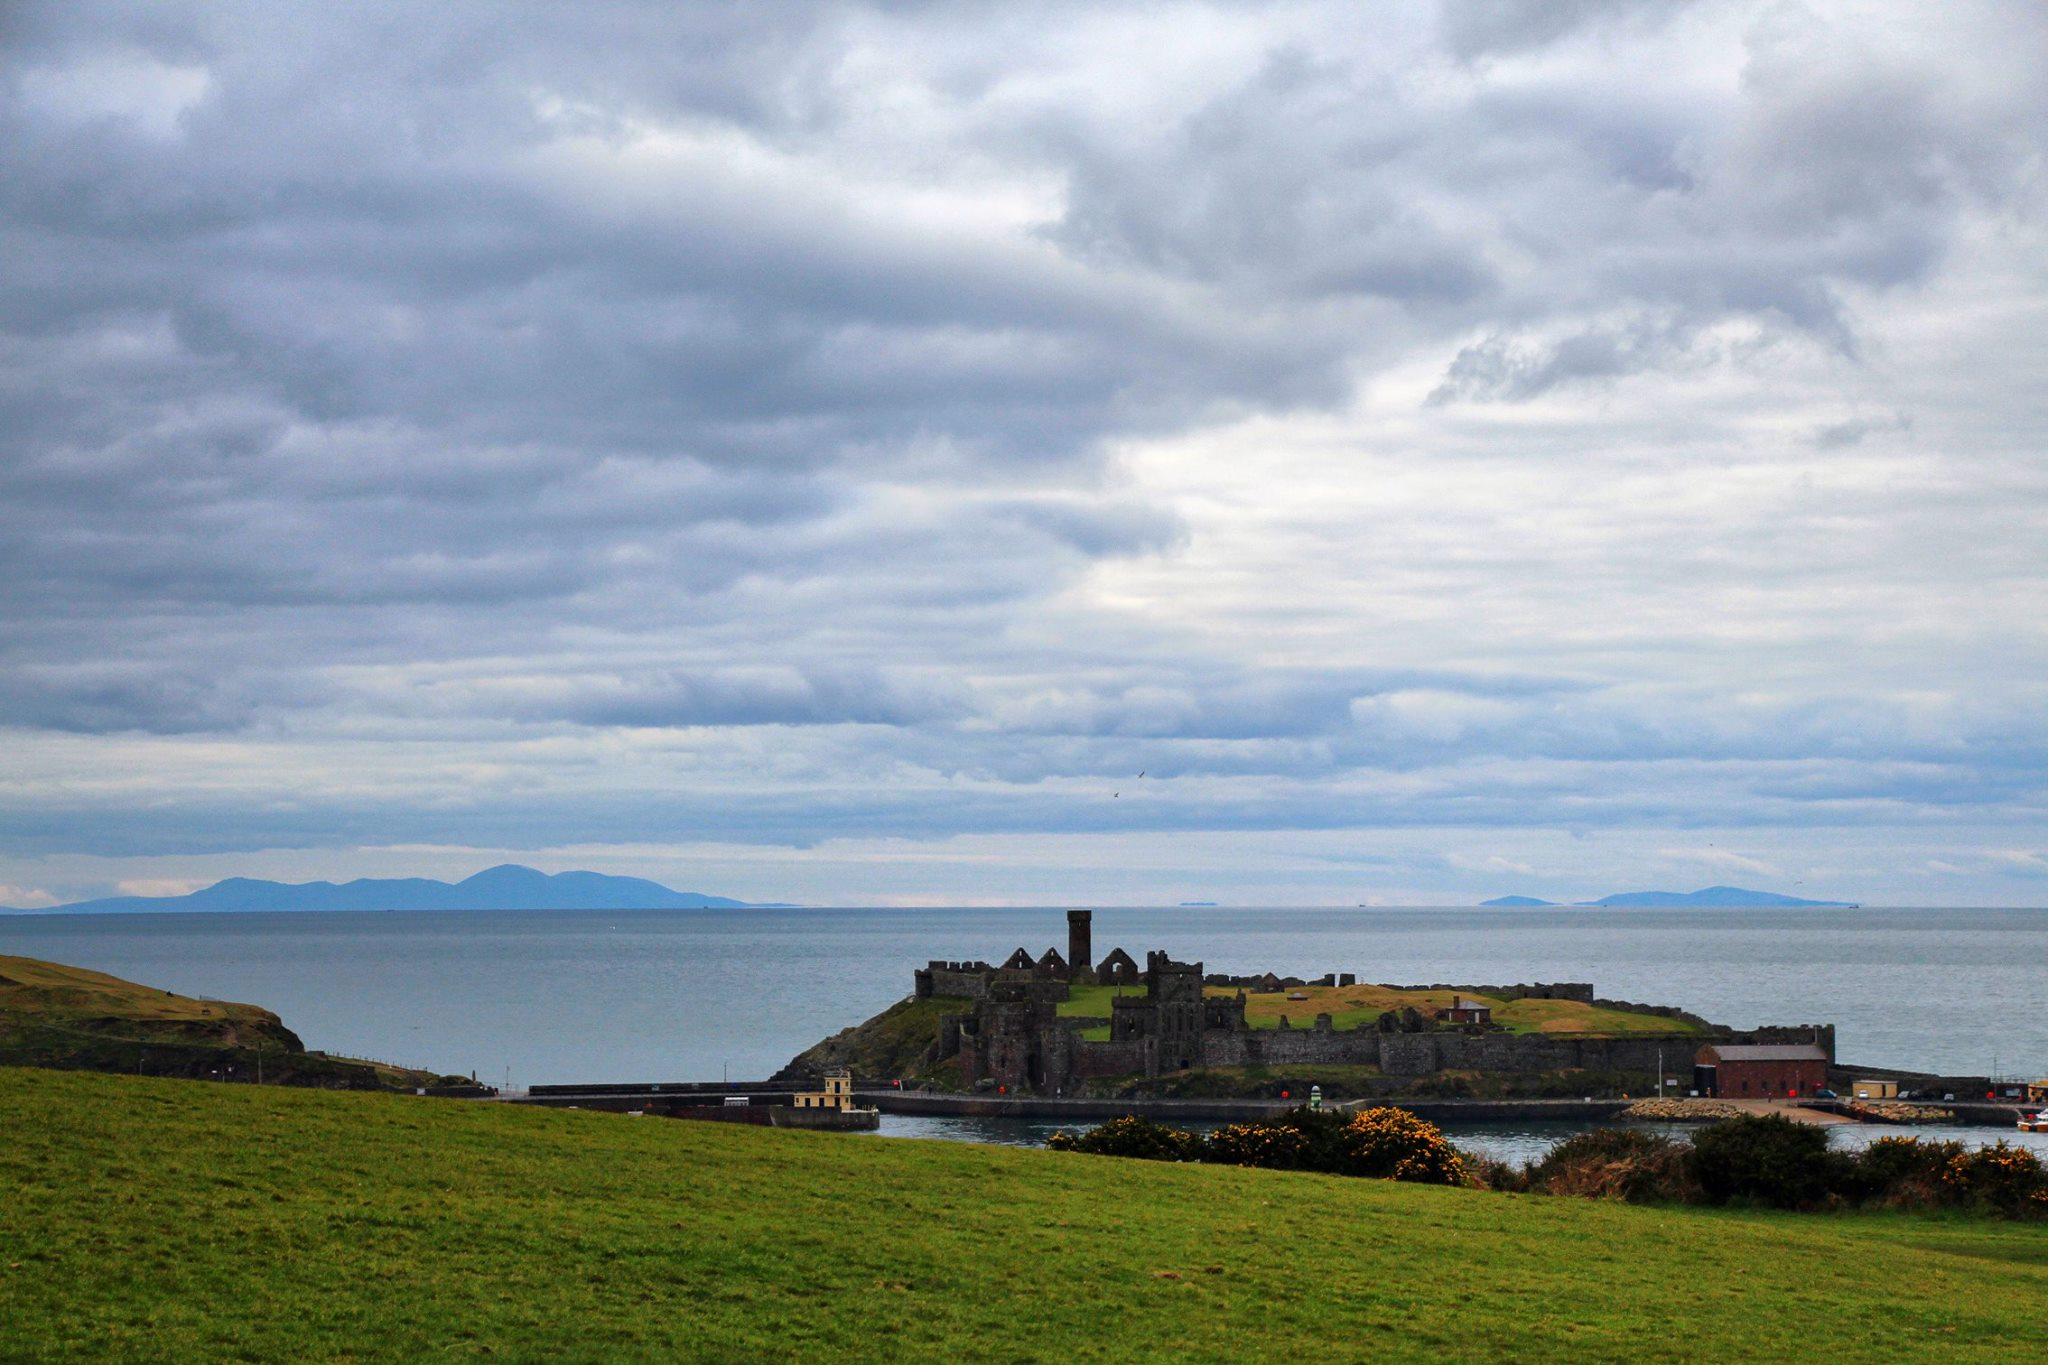 Peel Castle and the Irish hills, by Dave Corkish